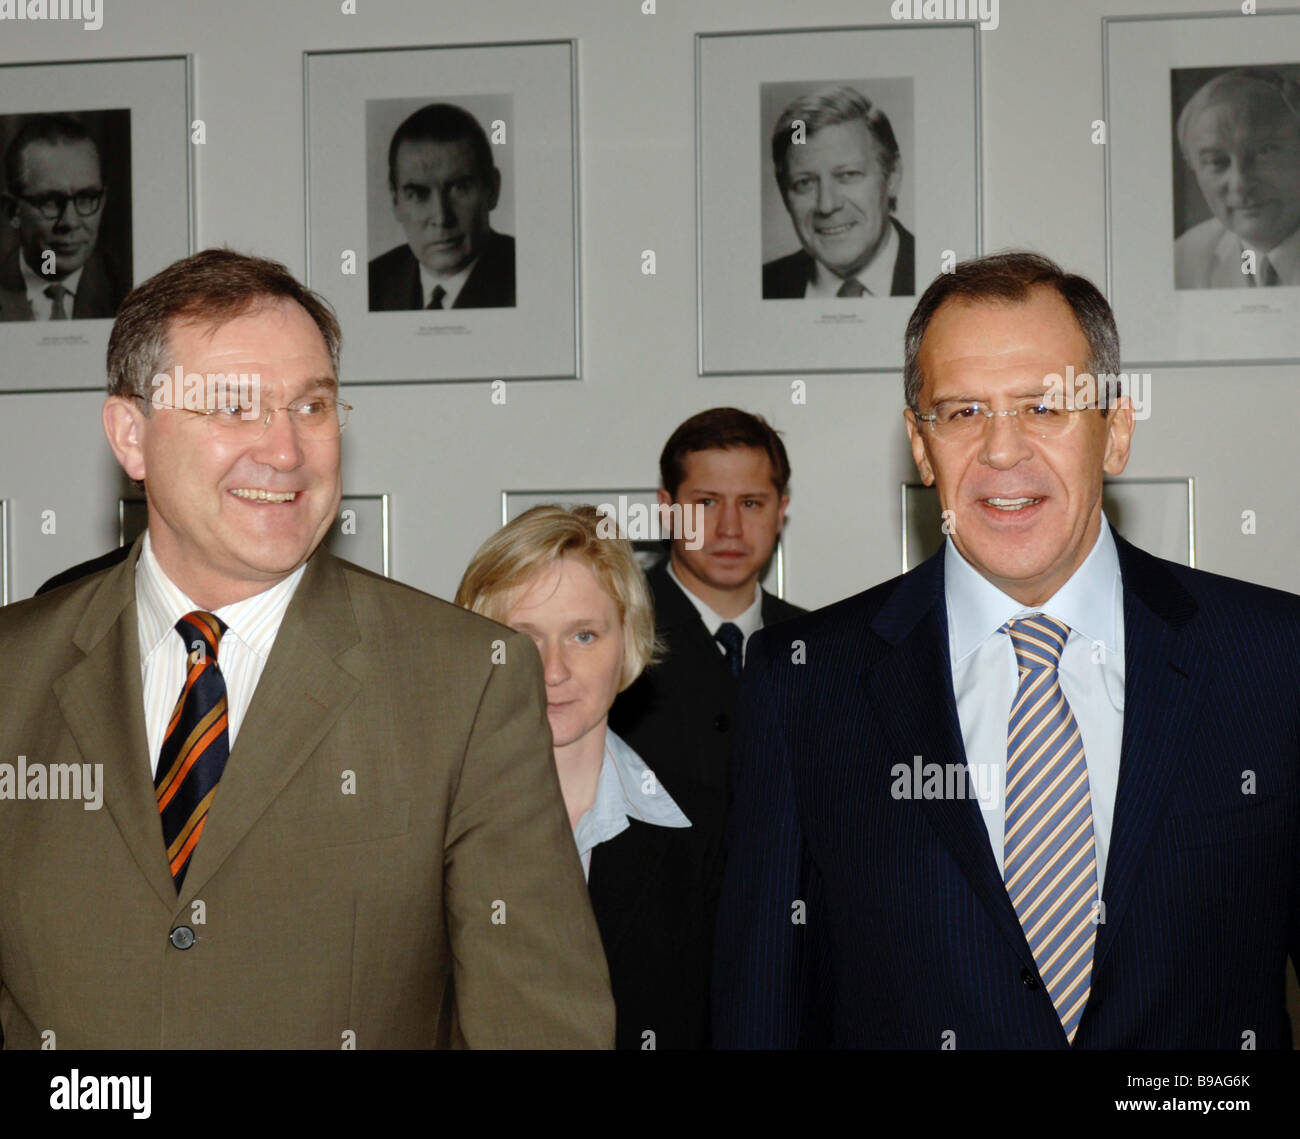 Franz Josef Jung Defense Minister of Germany left and Sergei Lavrov Russia s Foreign Minister meet in Berlin - Stock Image